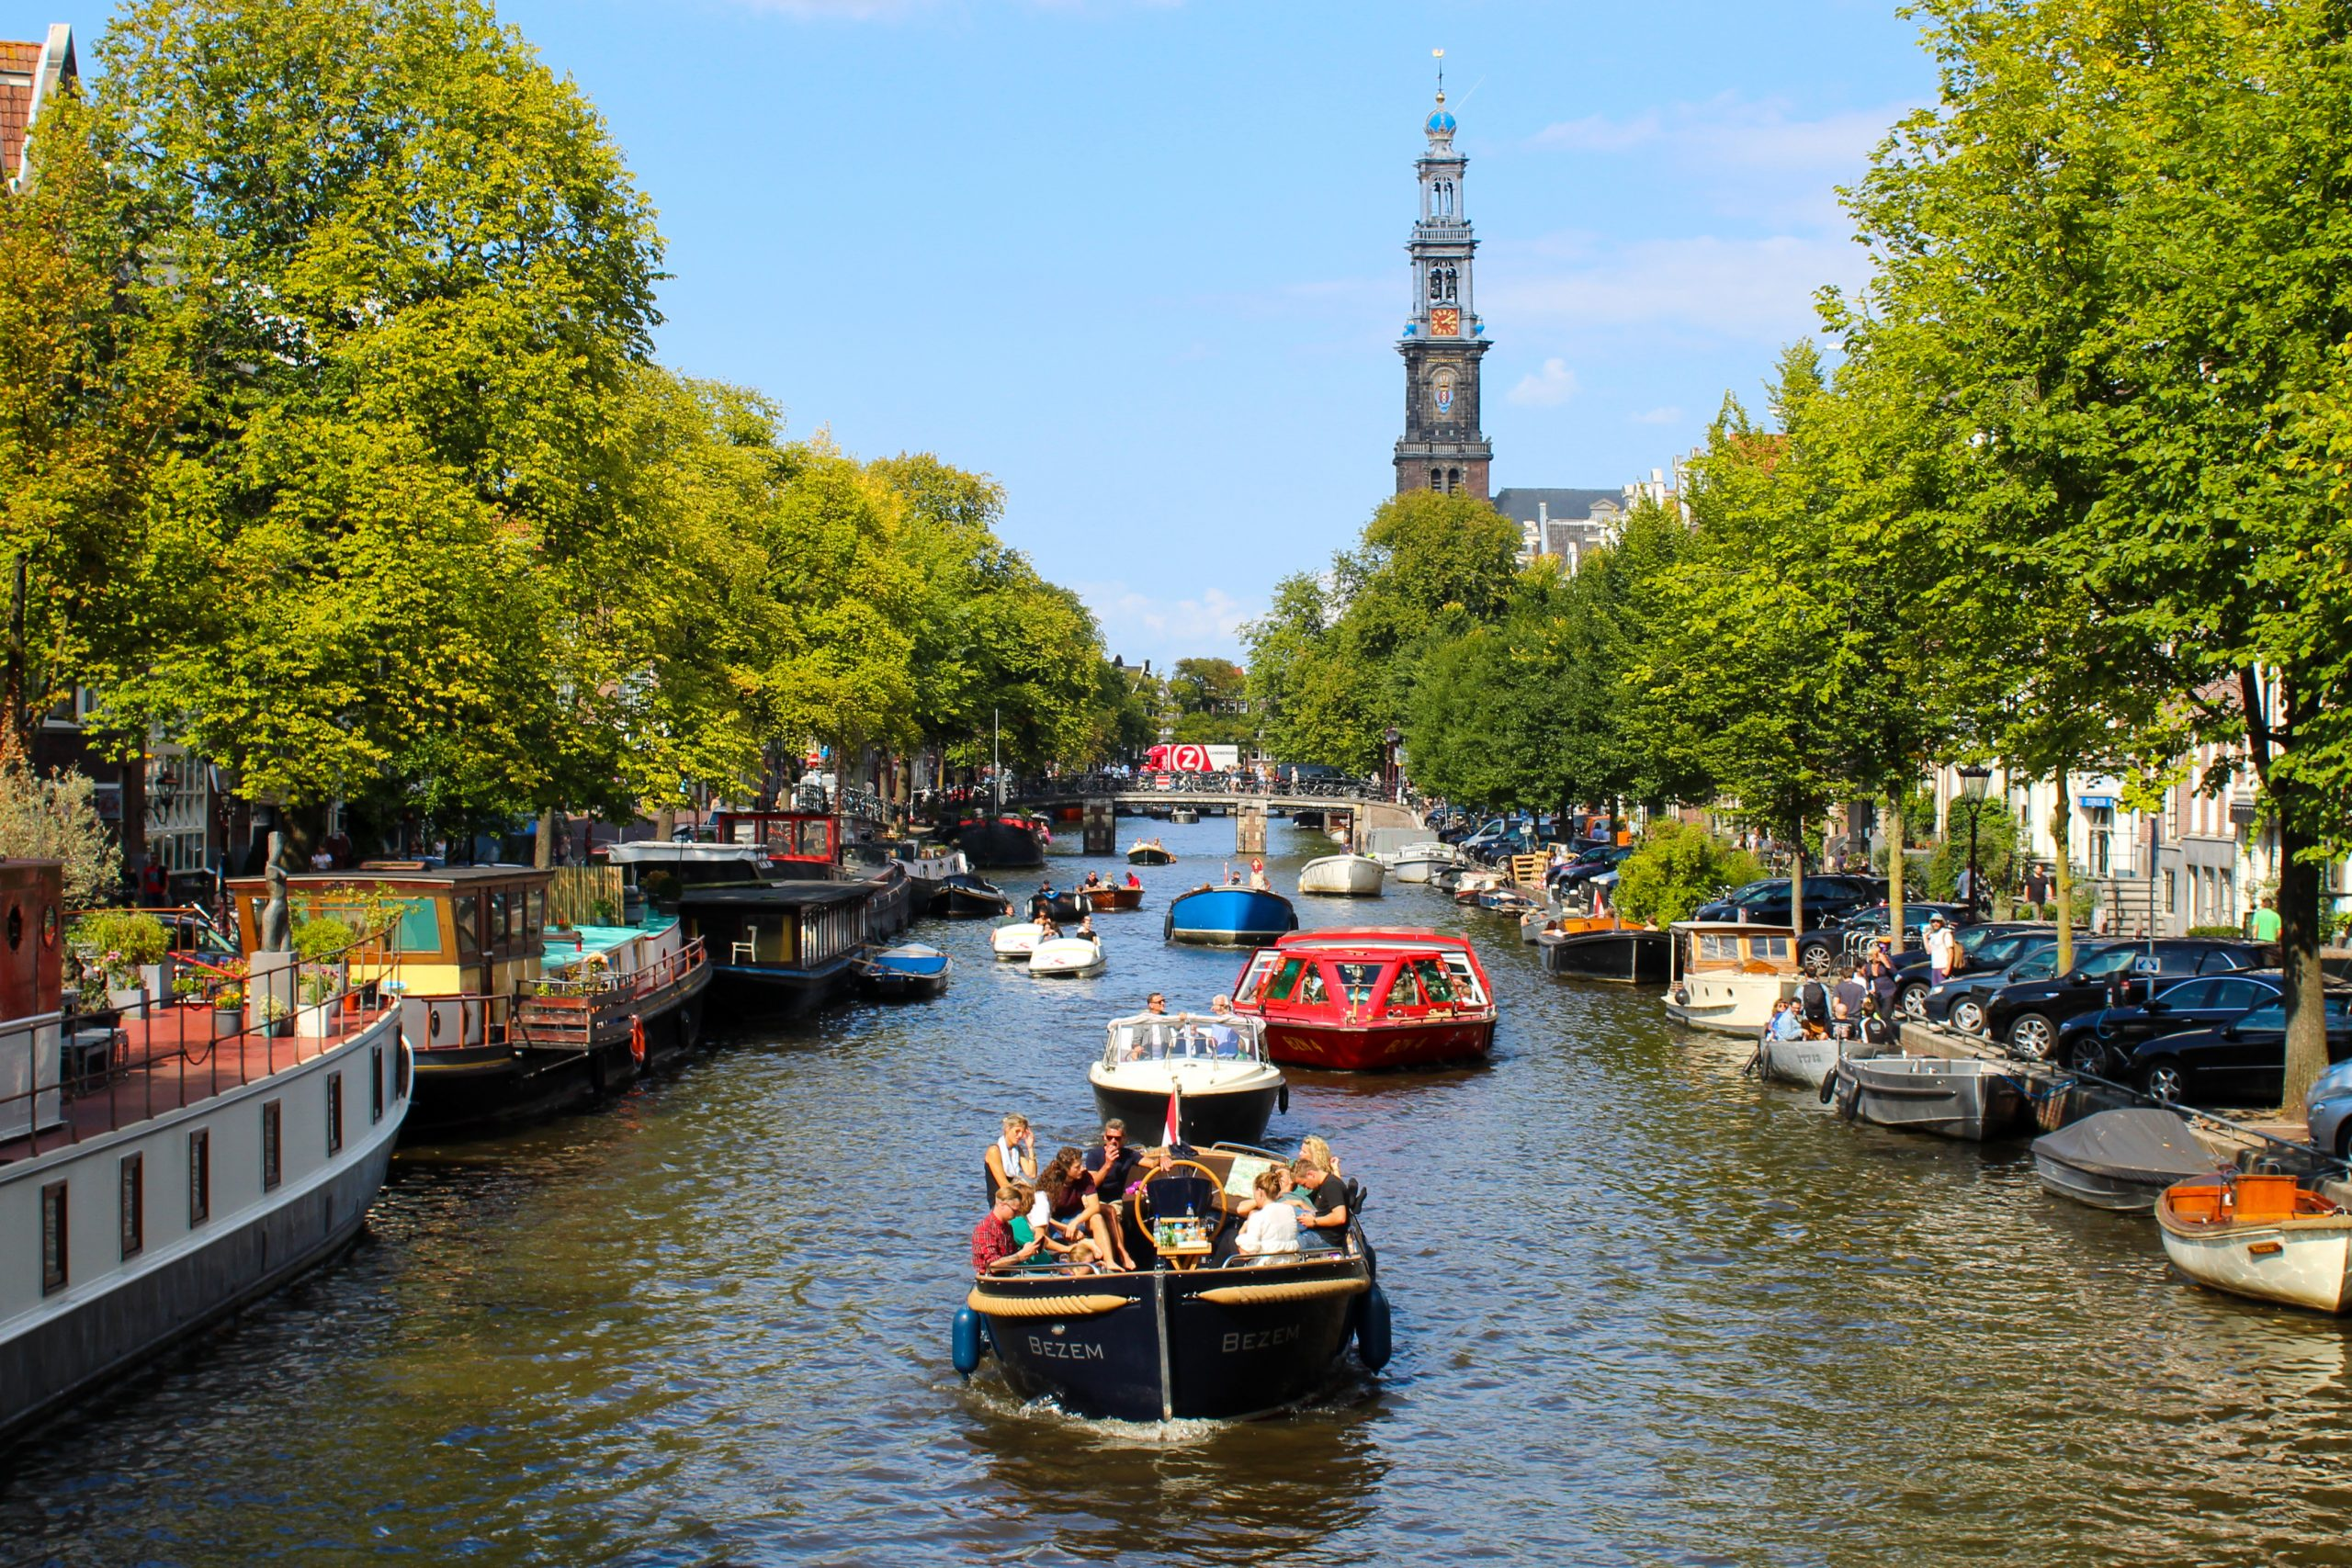 Amsterdam Canals   Clink Hostels   Beginner's guide to Amsterdam